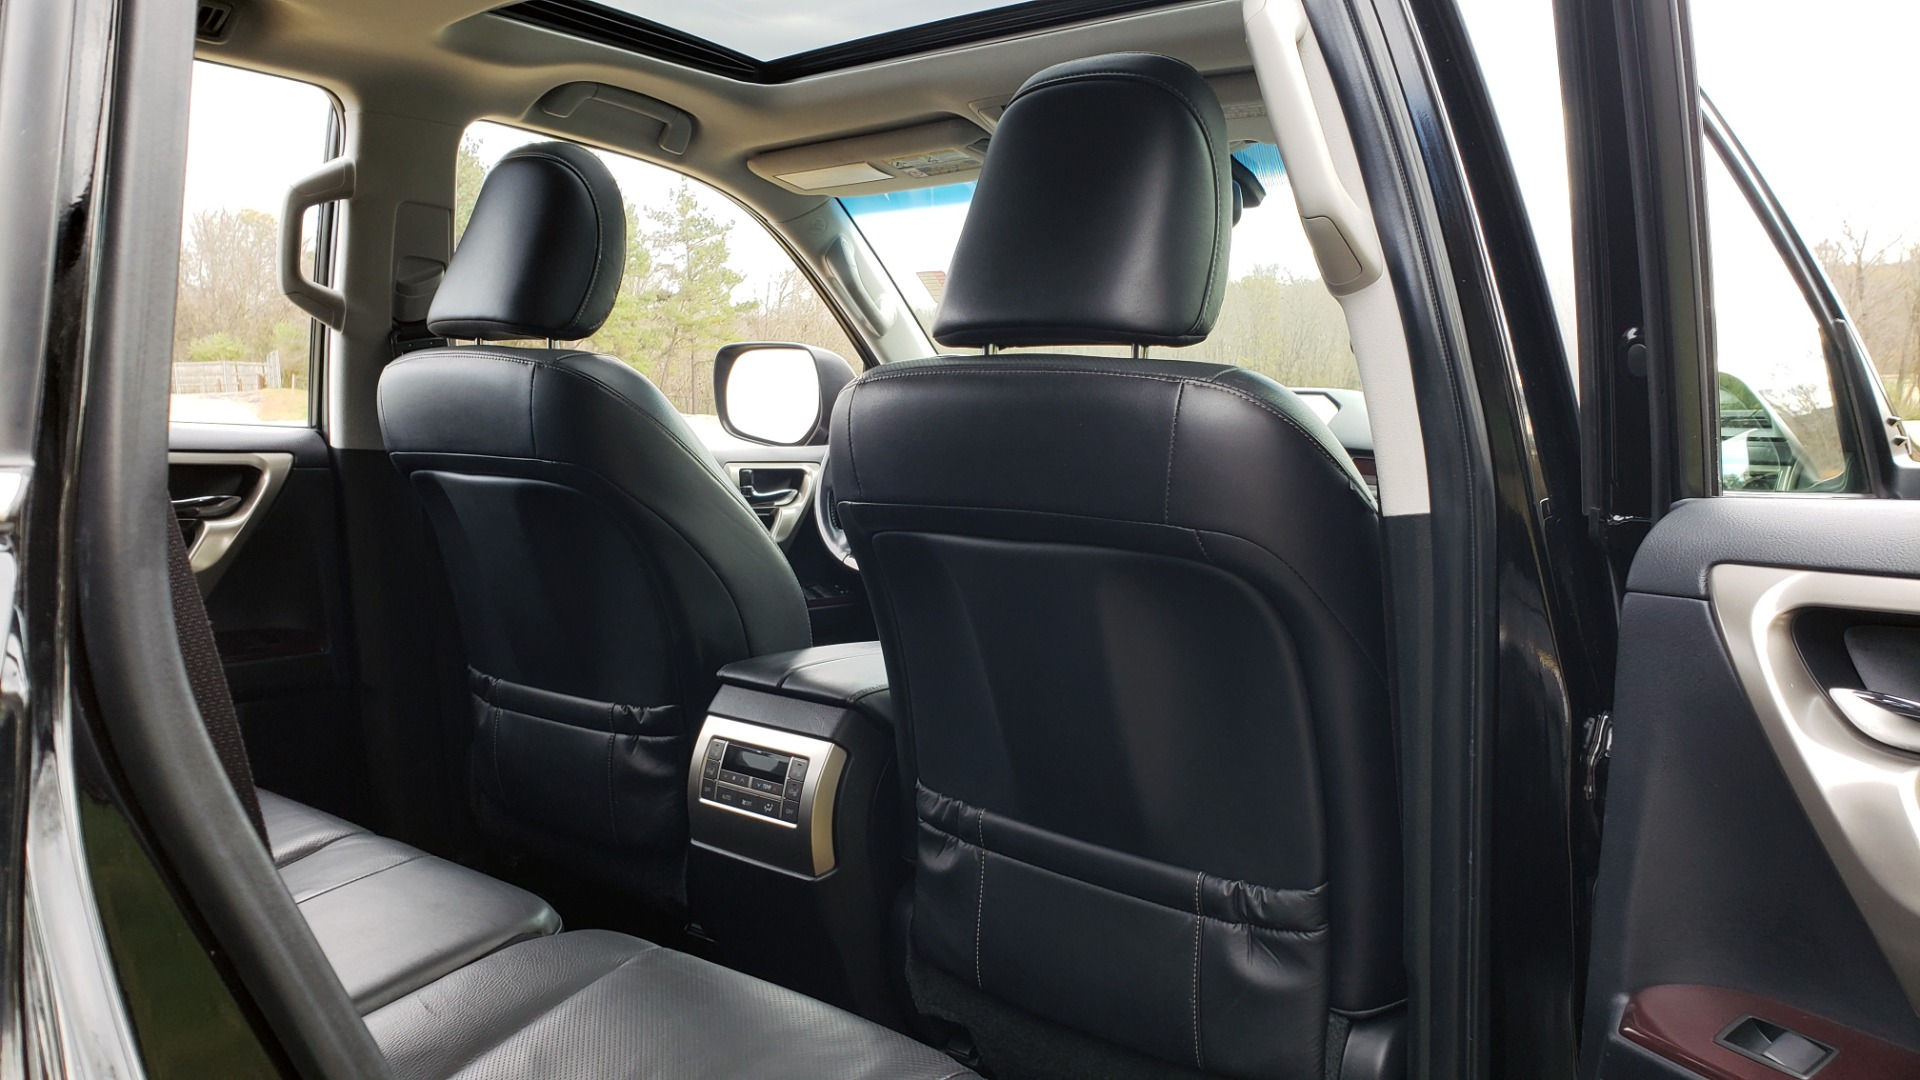 Used 2017 Lexus GX 460 PREMIUM / 4WD / NAV / SUNROOF / 3-ROW / BSM / REARVIEW for sale $34,995 at Formula Imports in Charlotte NC 28227 77